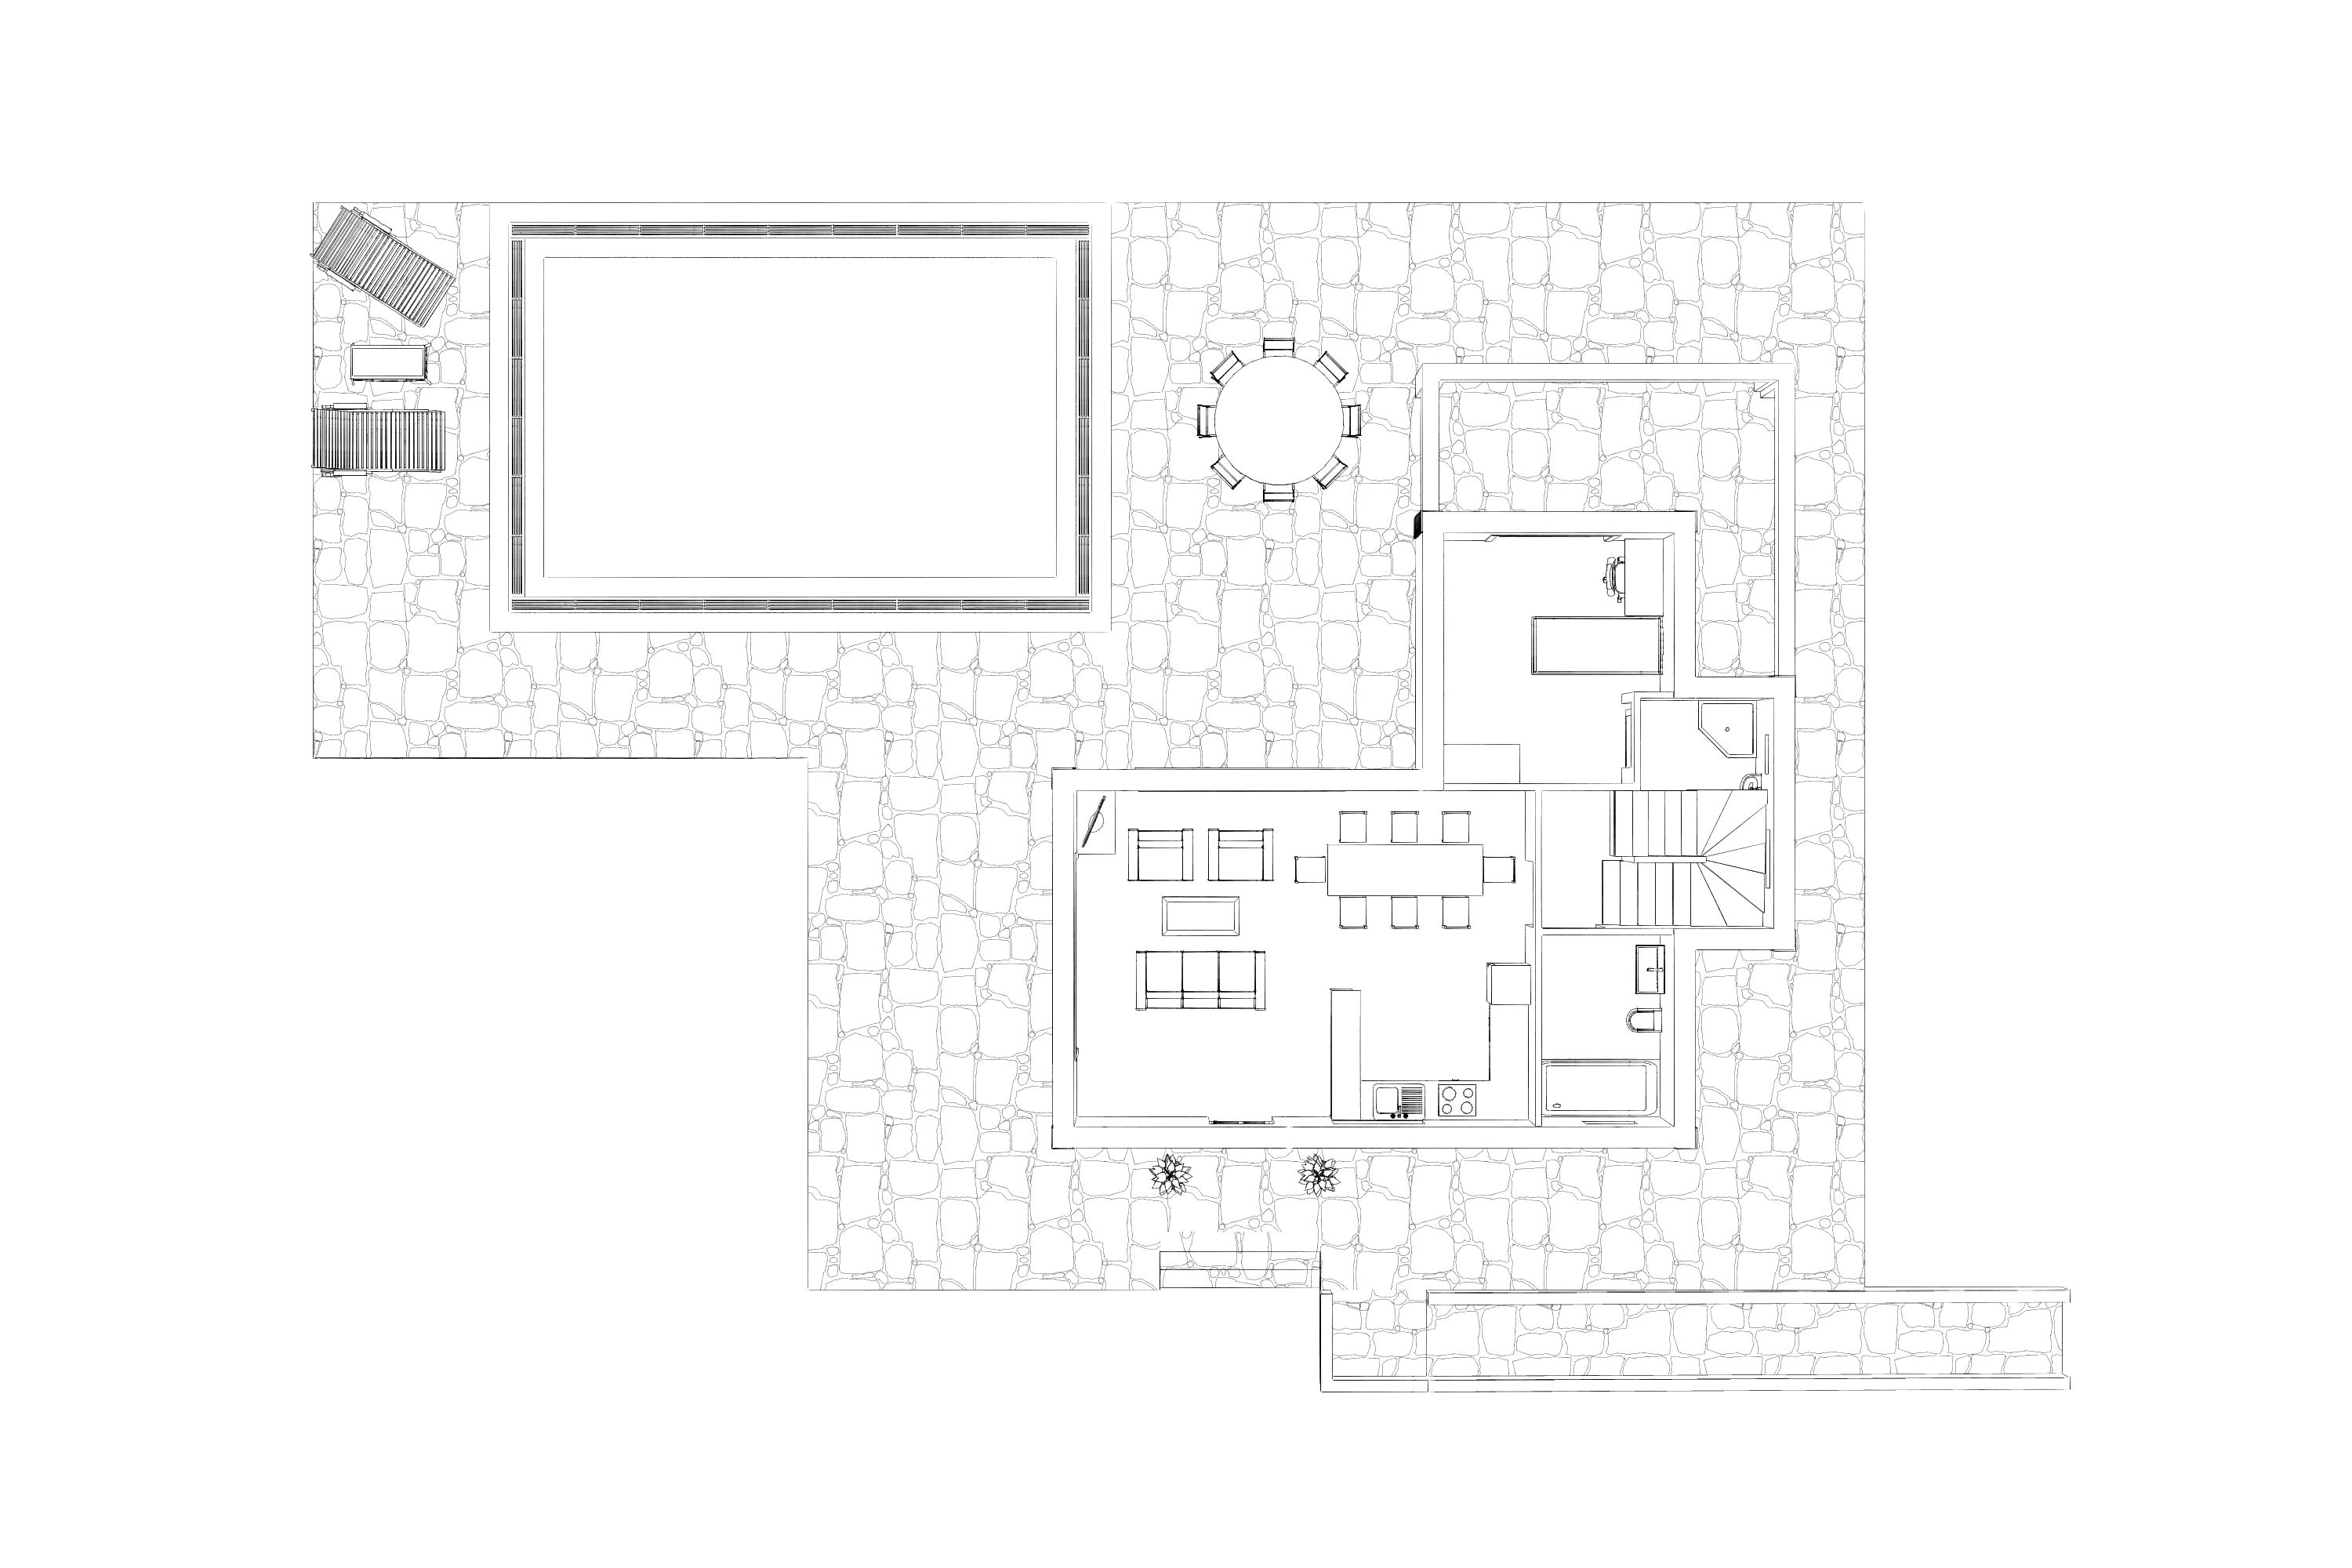 Paliouri-camera-05-sketch-ground-floor